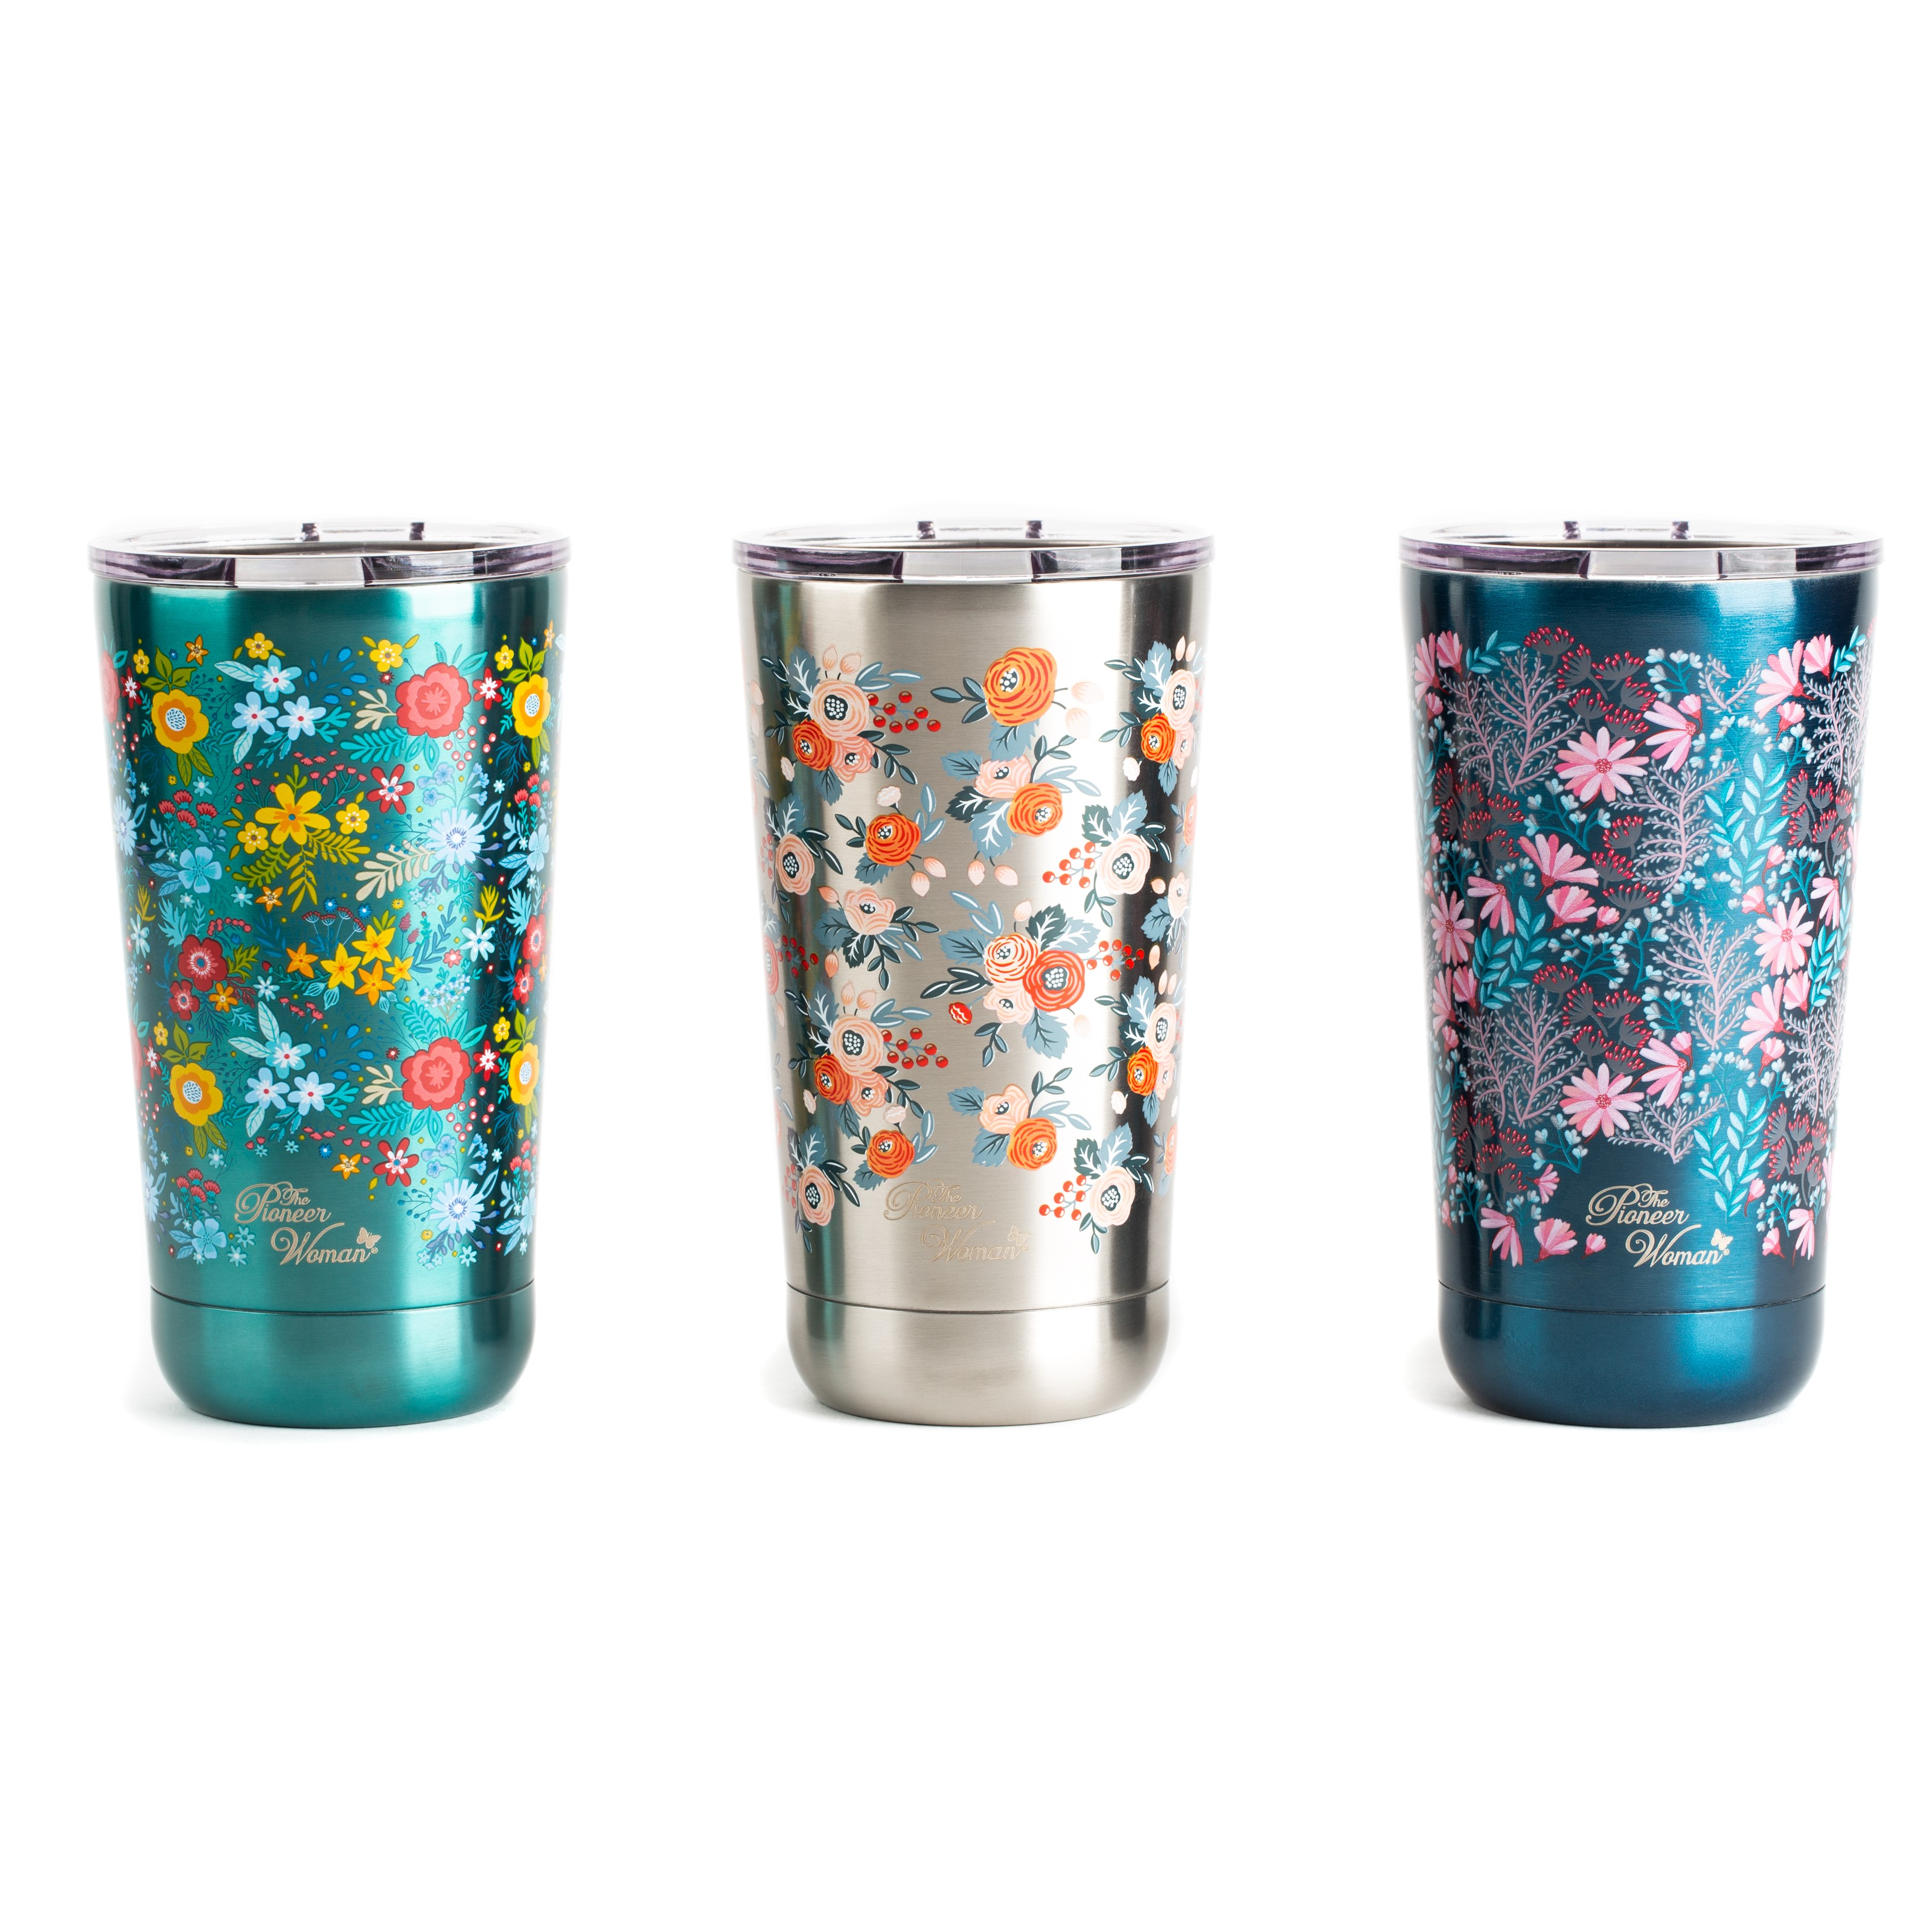 The Pioneer Woman® 18oz Stainless Steel Floral Tumblers - Set of 3 (Silver, Navy and Teal)